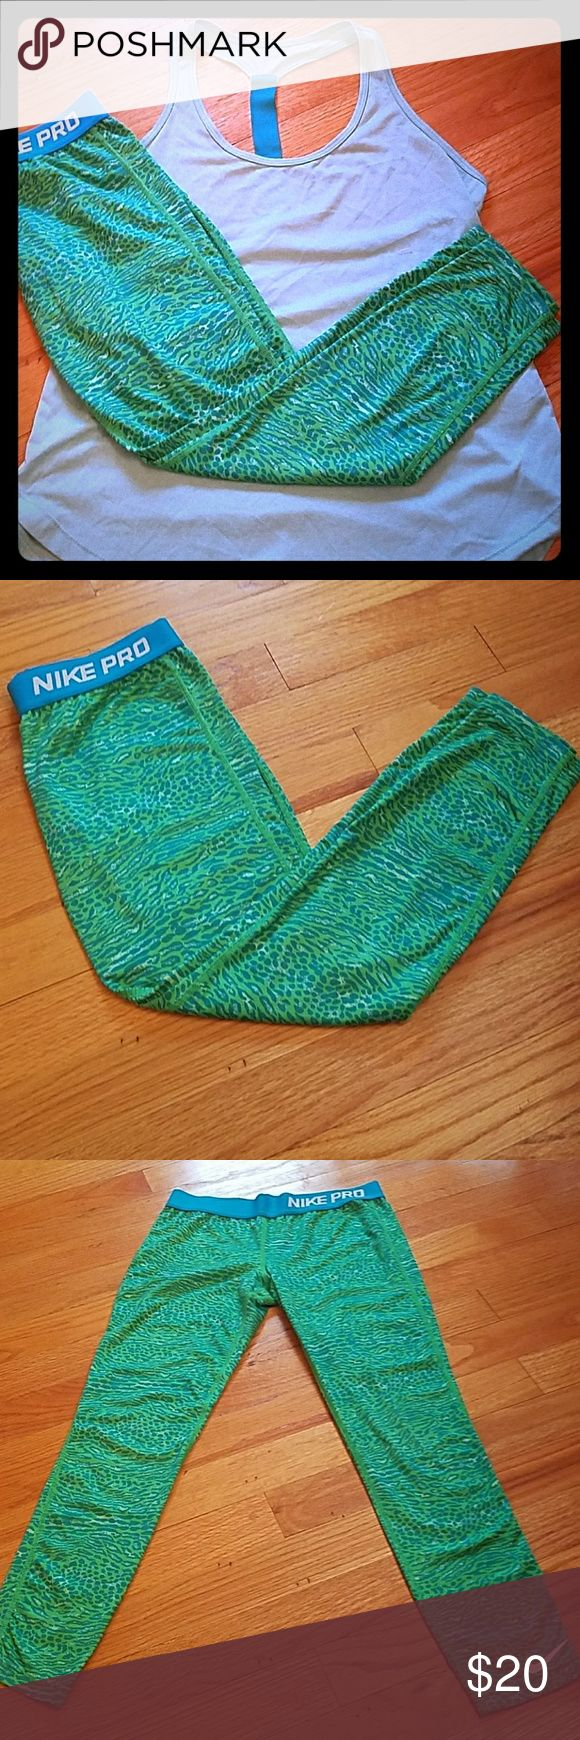 Nike Pro Capris Size Medium Medium pair of Nike Pro Capris. Blue and green animal print. Blue waist band.  Great for the gym or to lounge around in.  Make me an offer !!!! Nike Pants Leggings